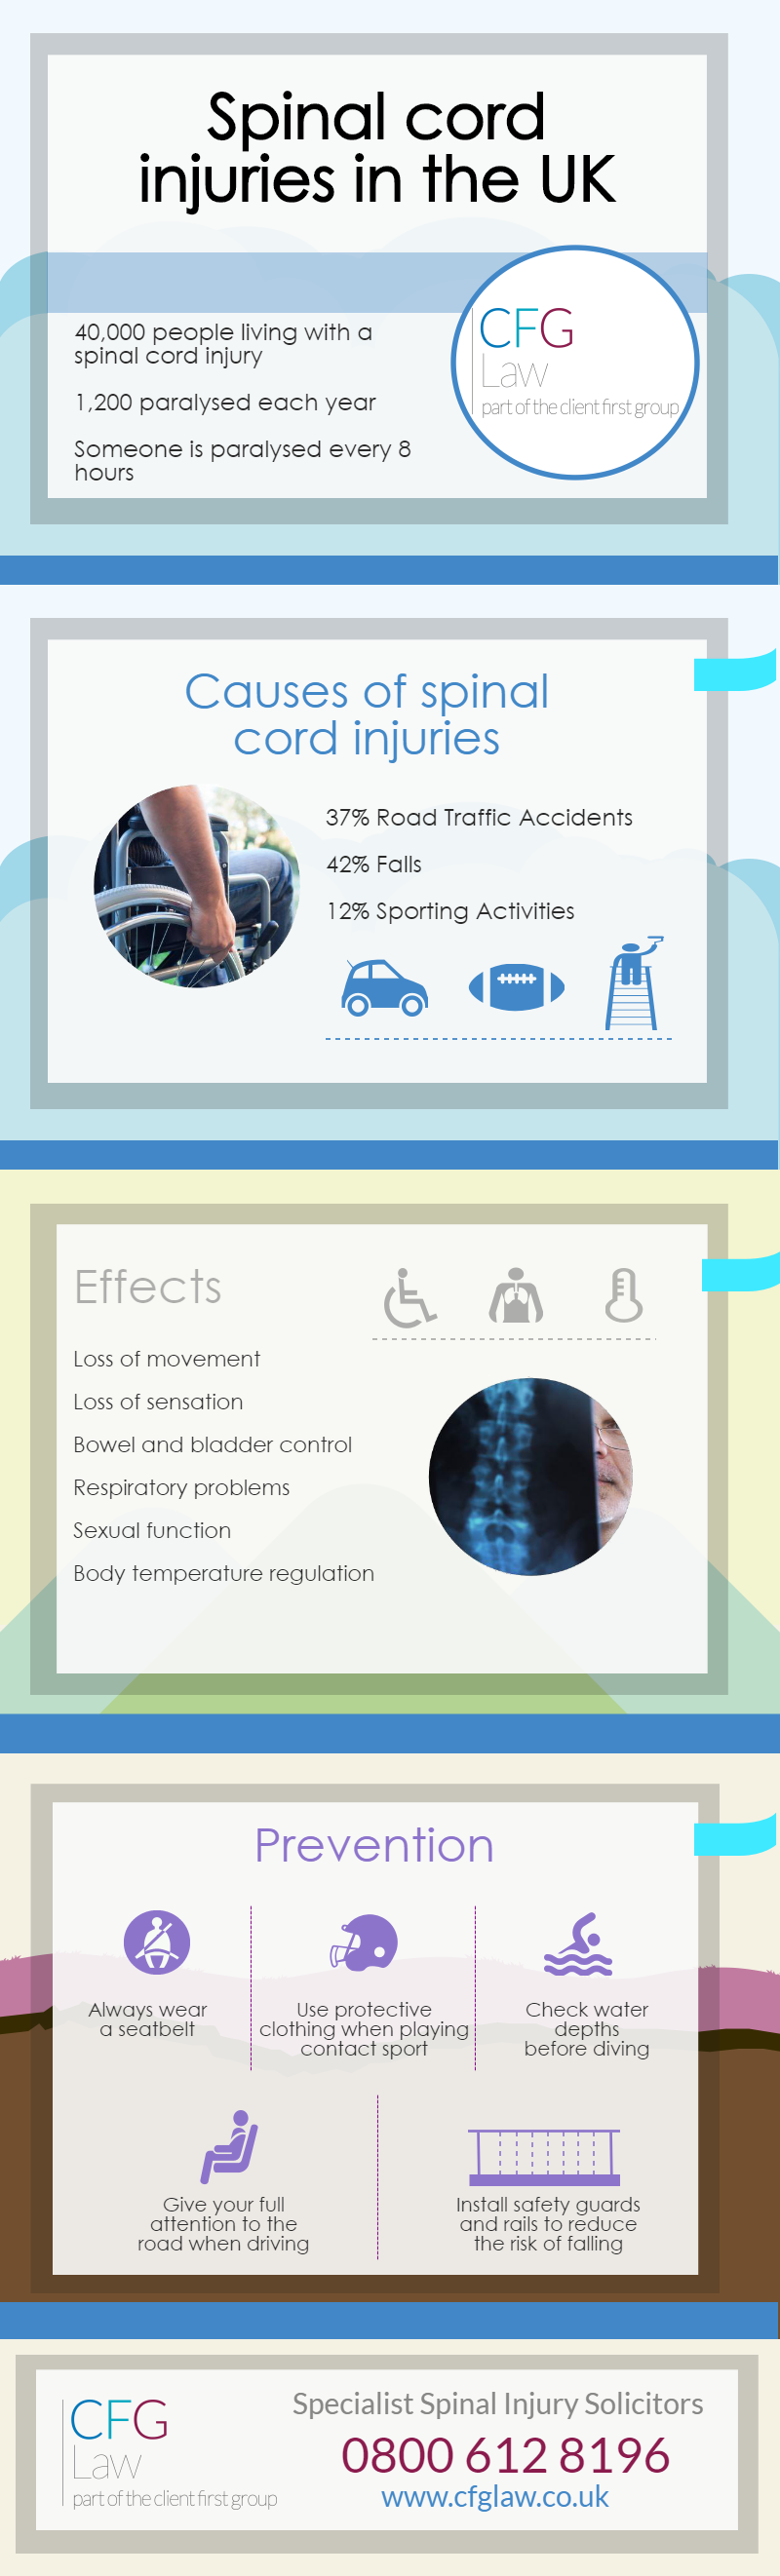 Spinal cord injuries in the UK